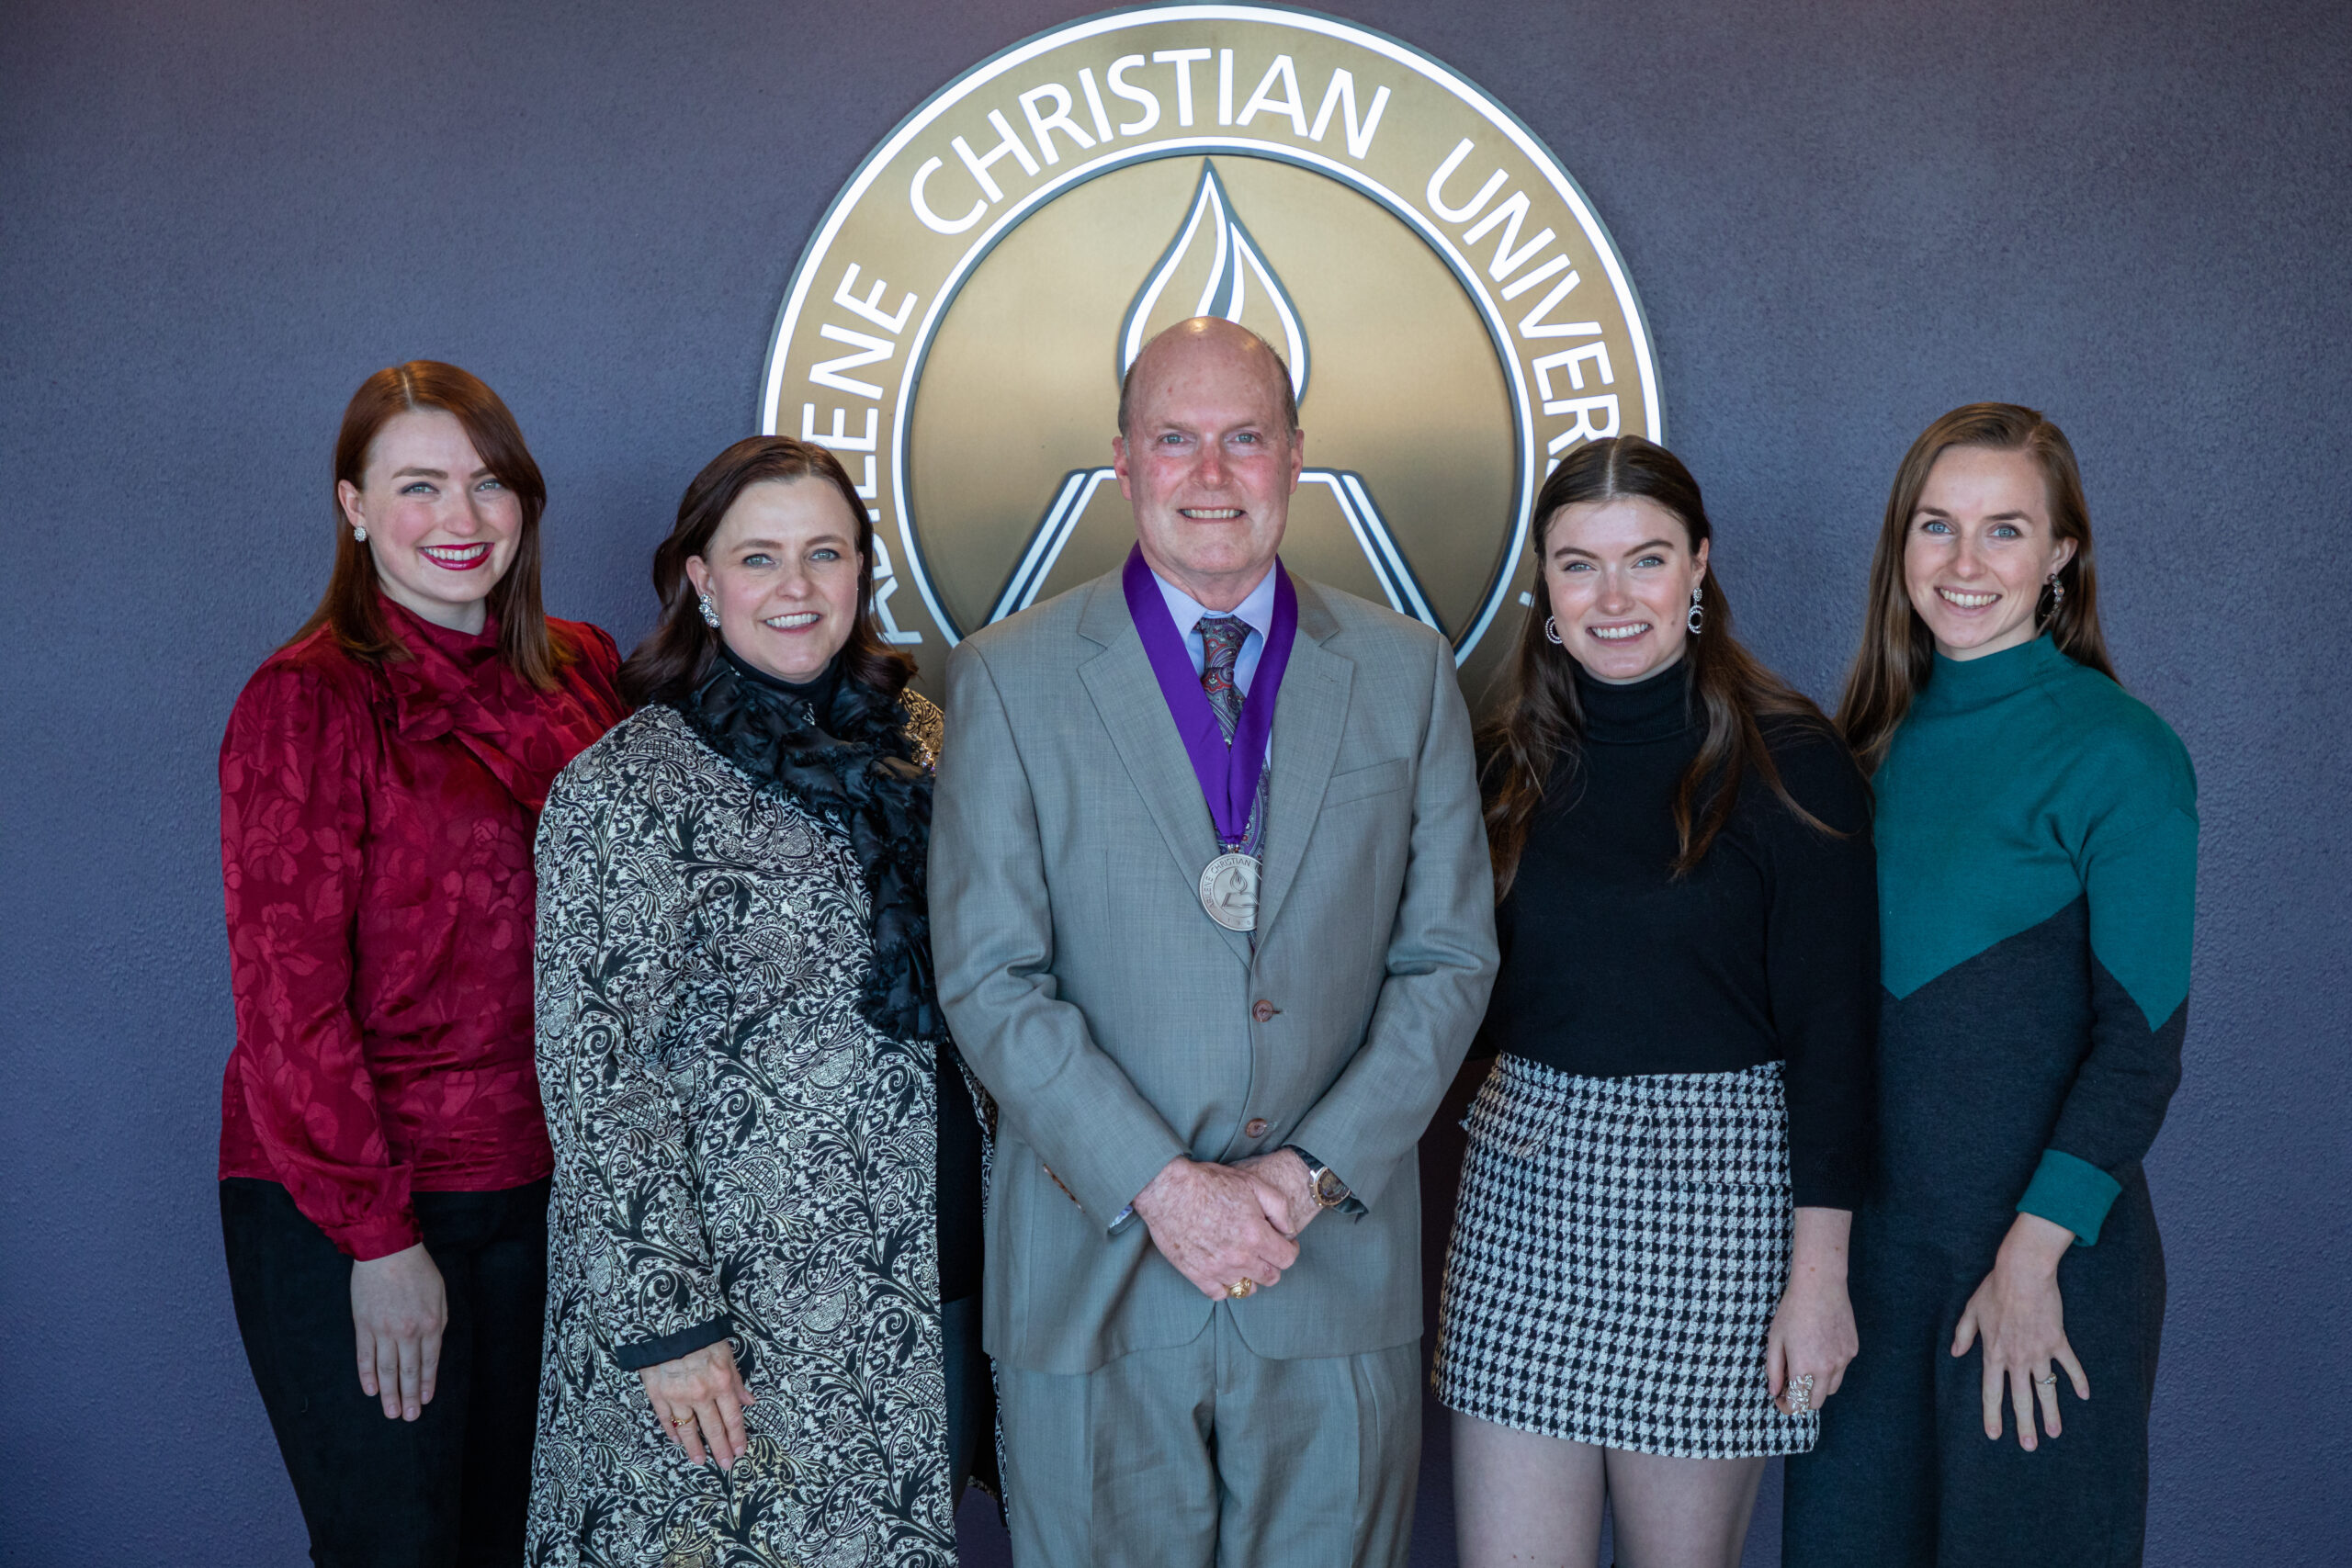 Dr. Tom Lee with his wife, Pebbles, and daughters, Isabel Lee-Rosson ('15), Victoria ('17) and Josephine